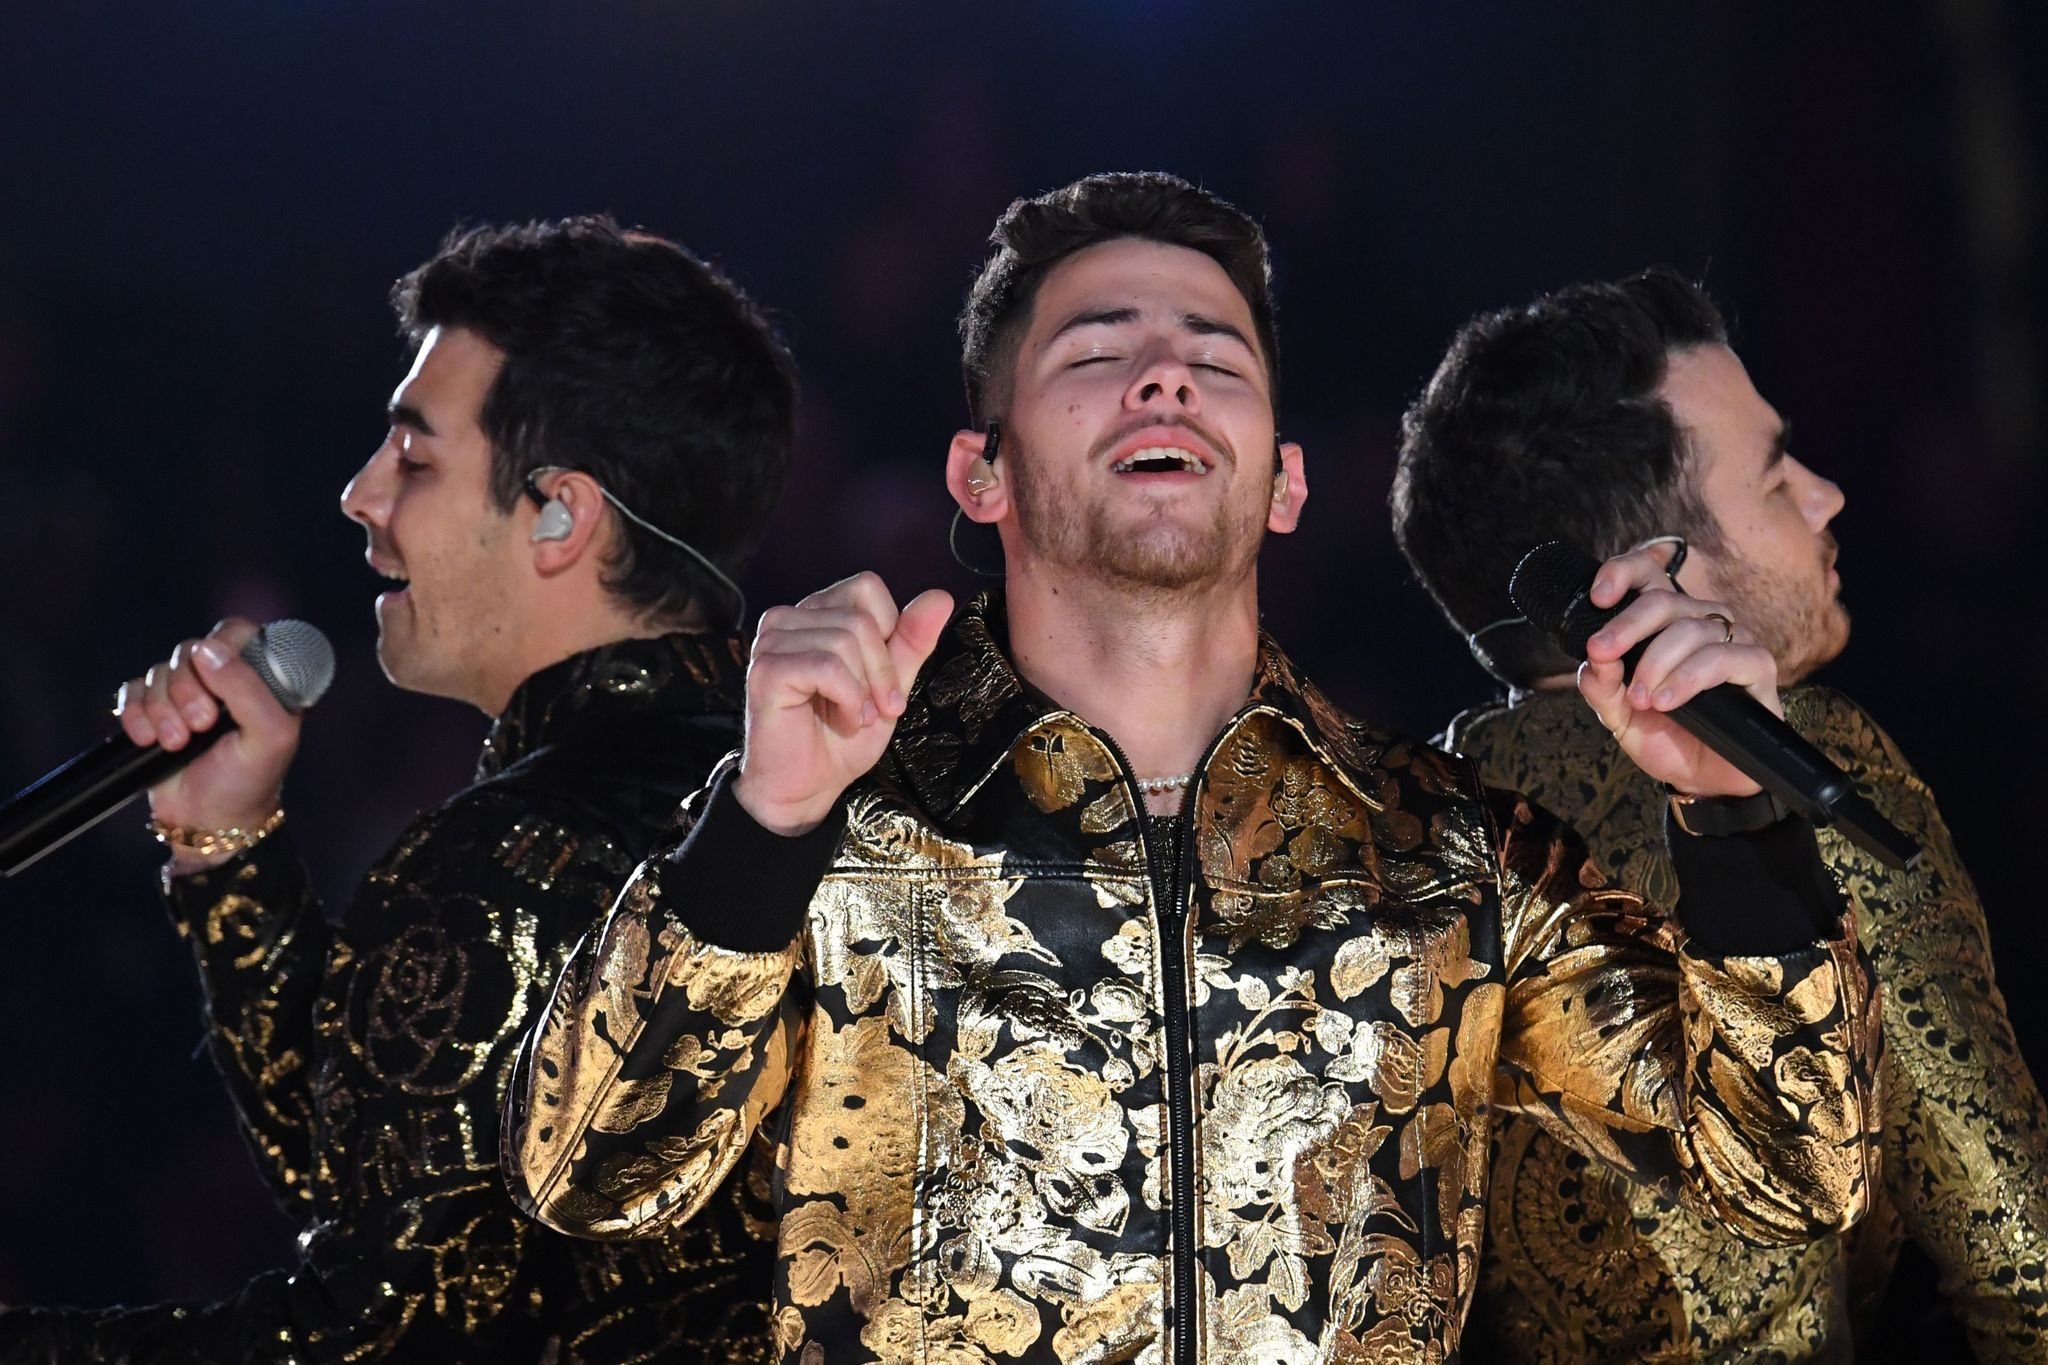 Nick Jonas performed at the Grammys with food in his teeth – and made fun of himself afterward